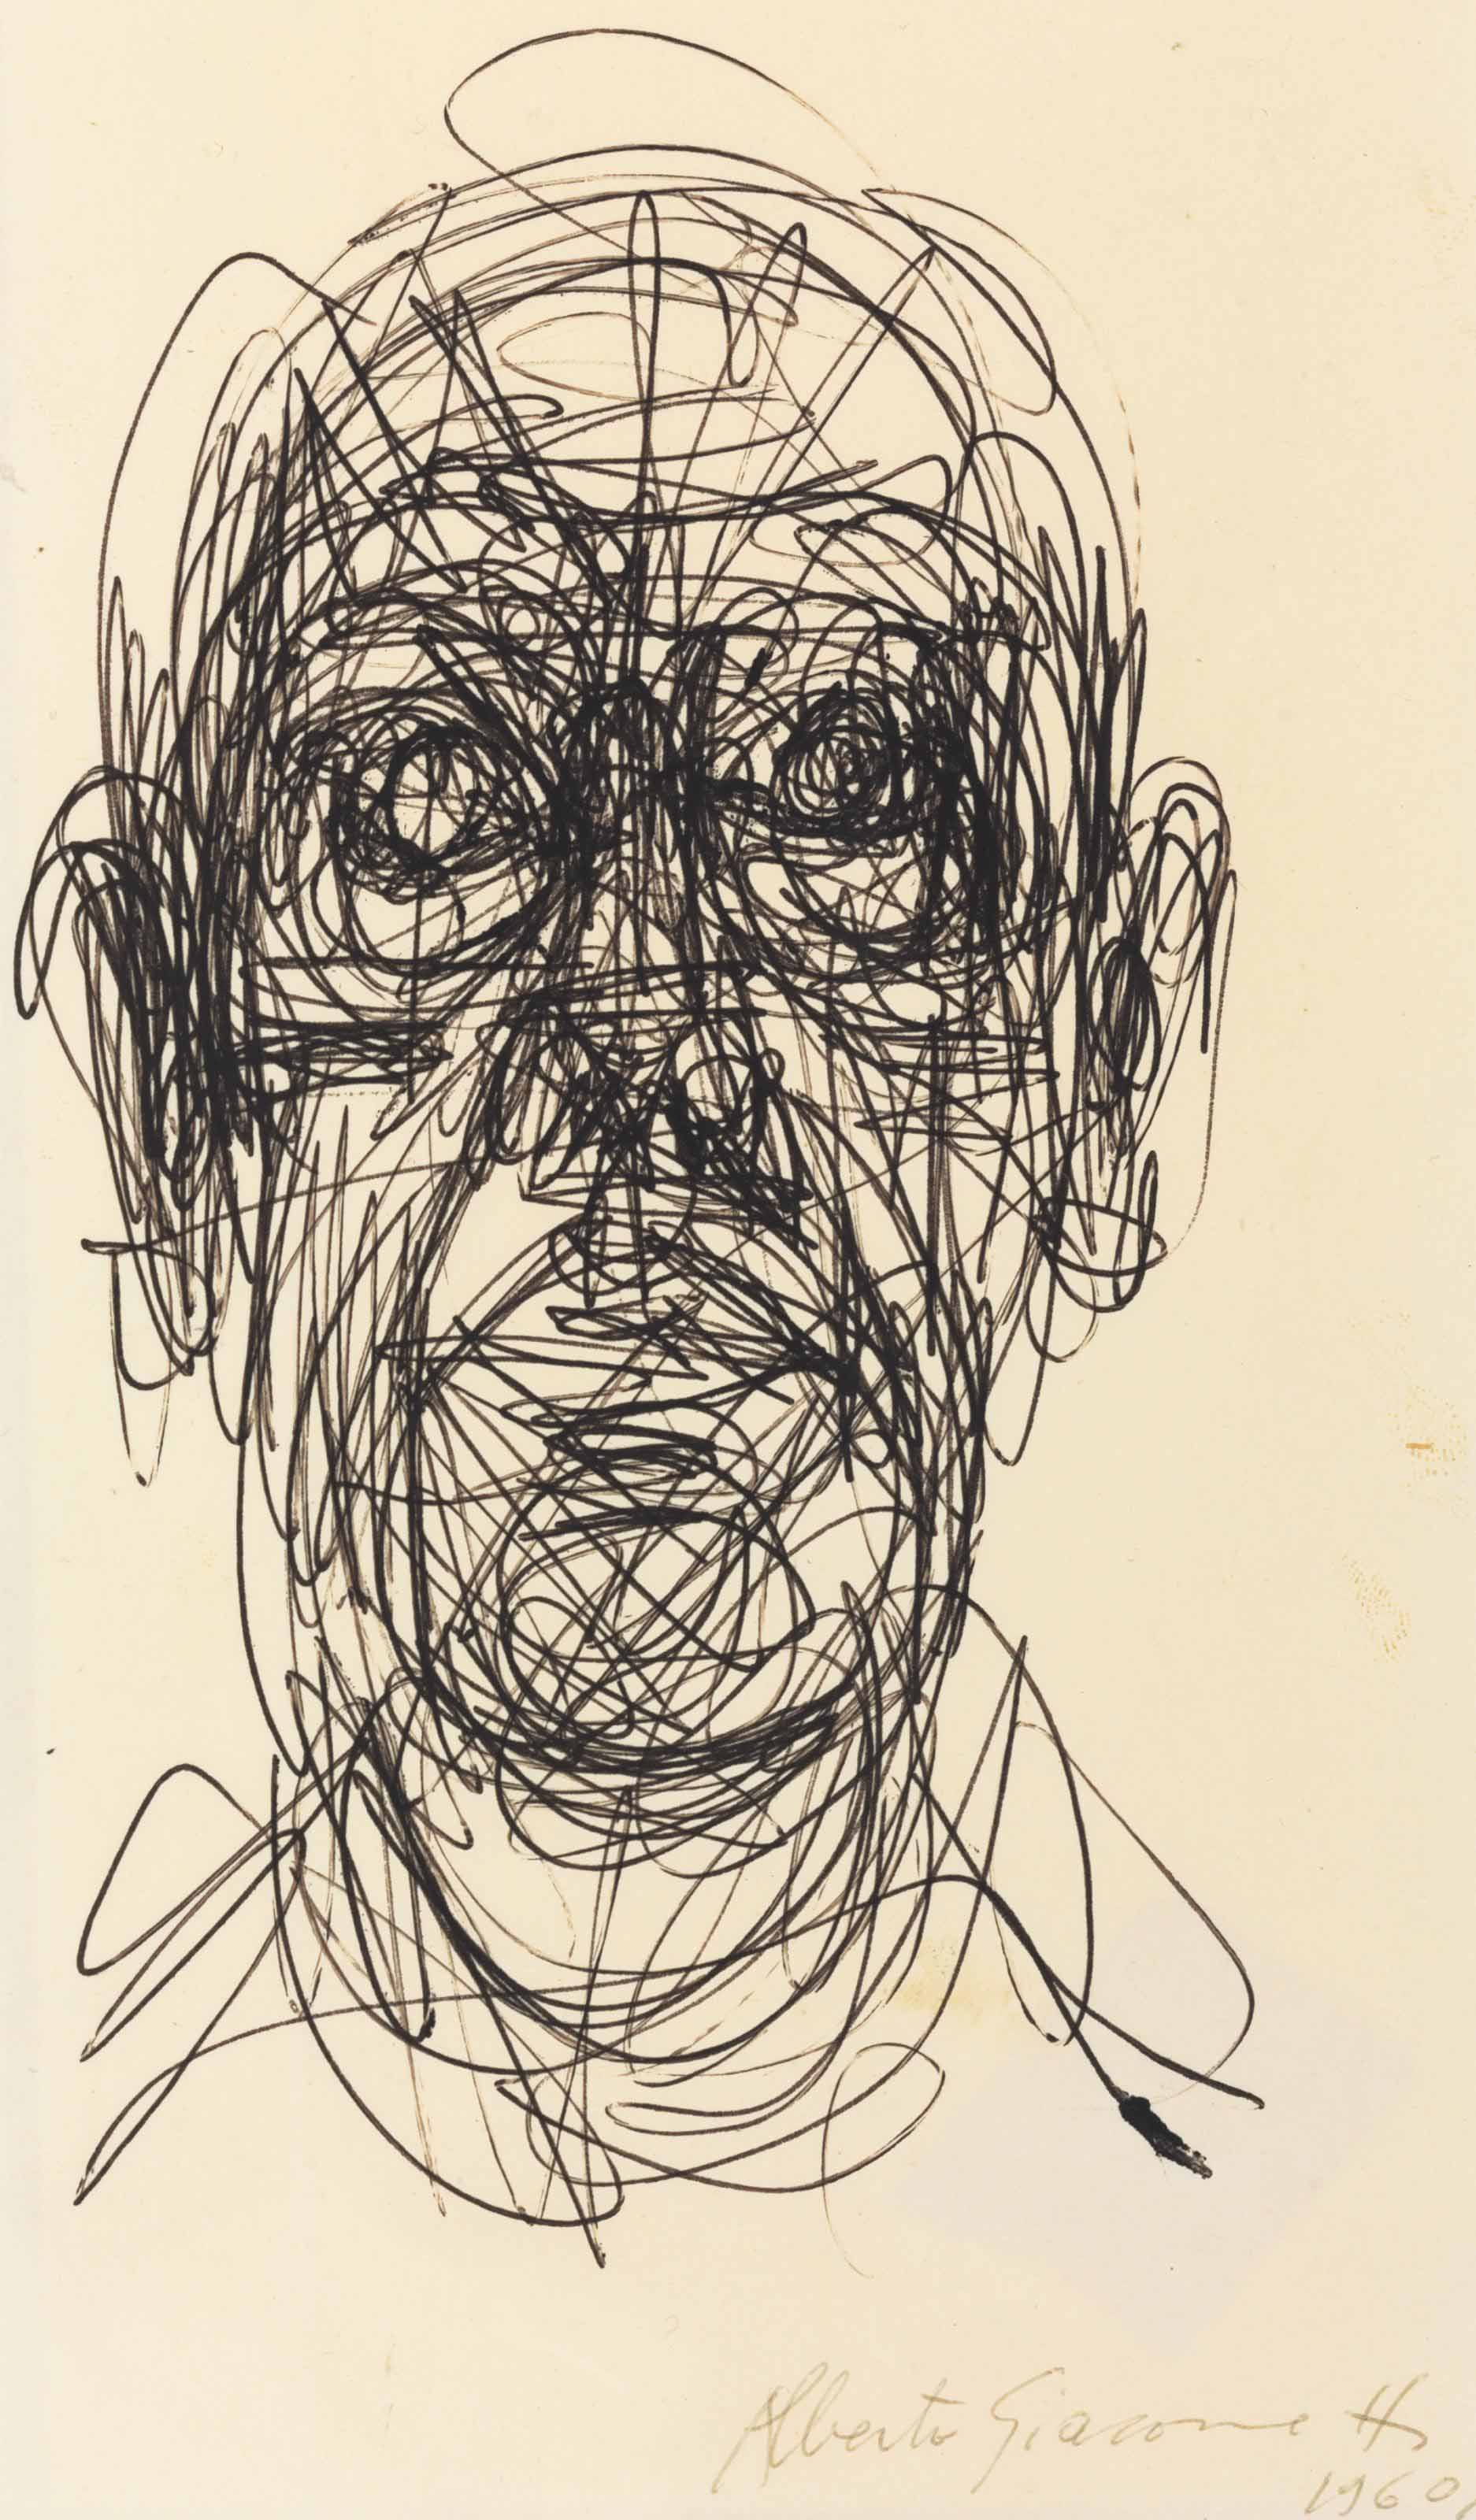 Famous Line Drawing Artists Names : Alberto giacometti tête d homme christie s